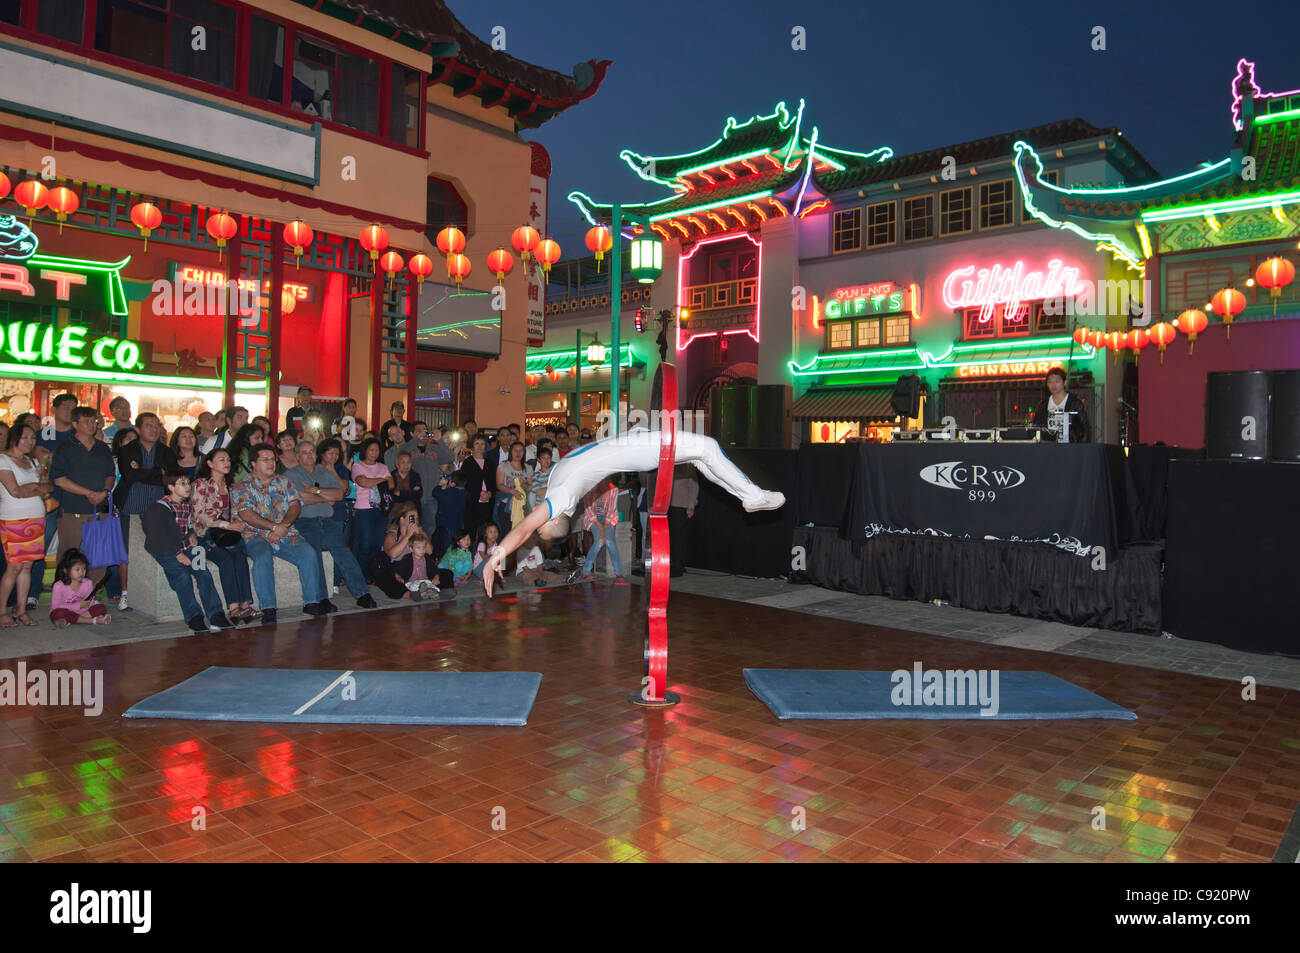 Large crowds in the evening at Los Angeles Chinatown during Summer Nights event. - Stock Image